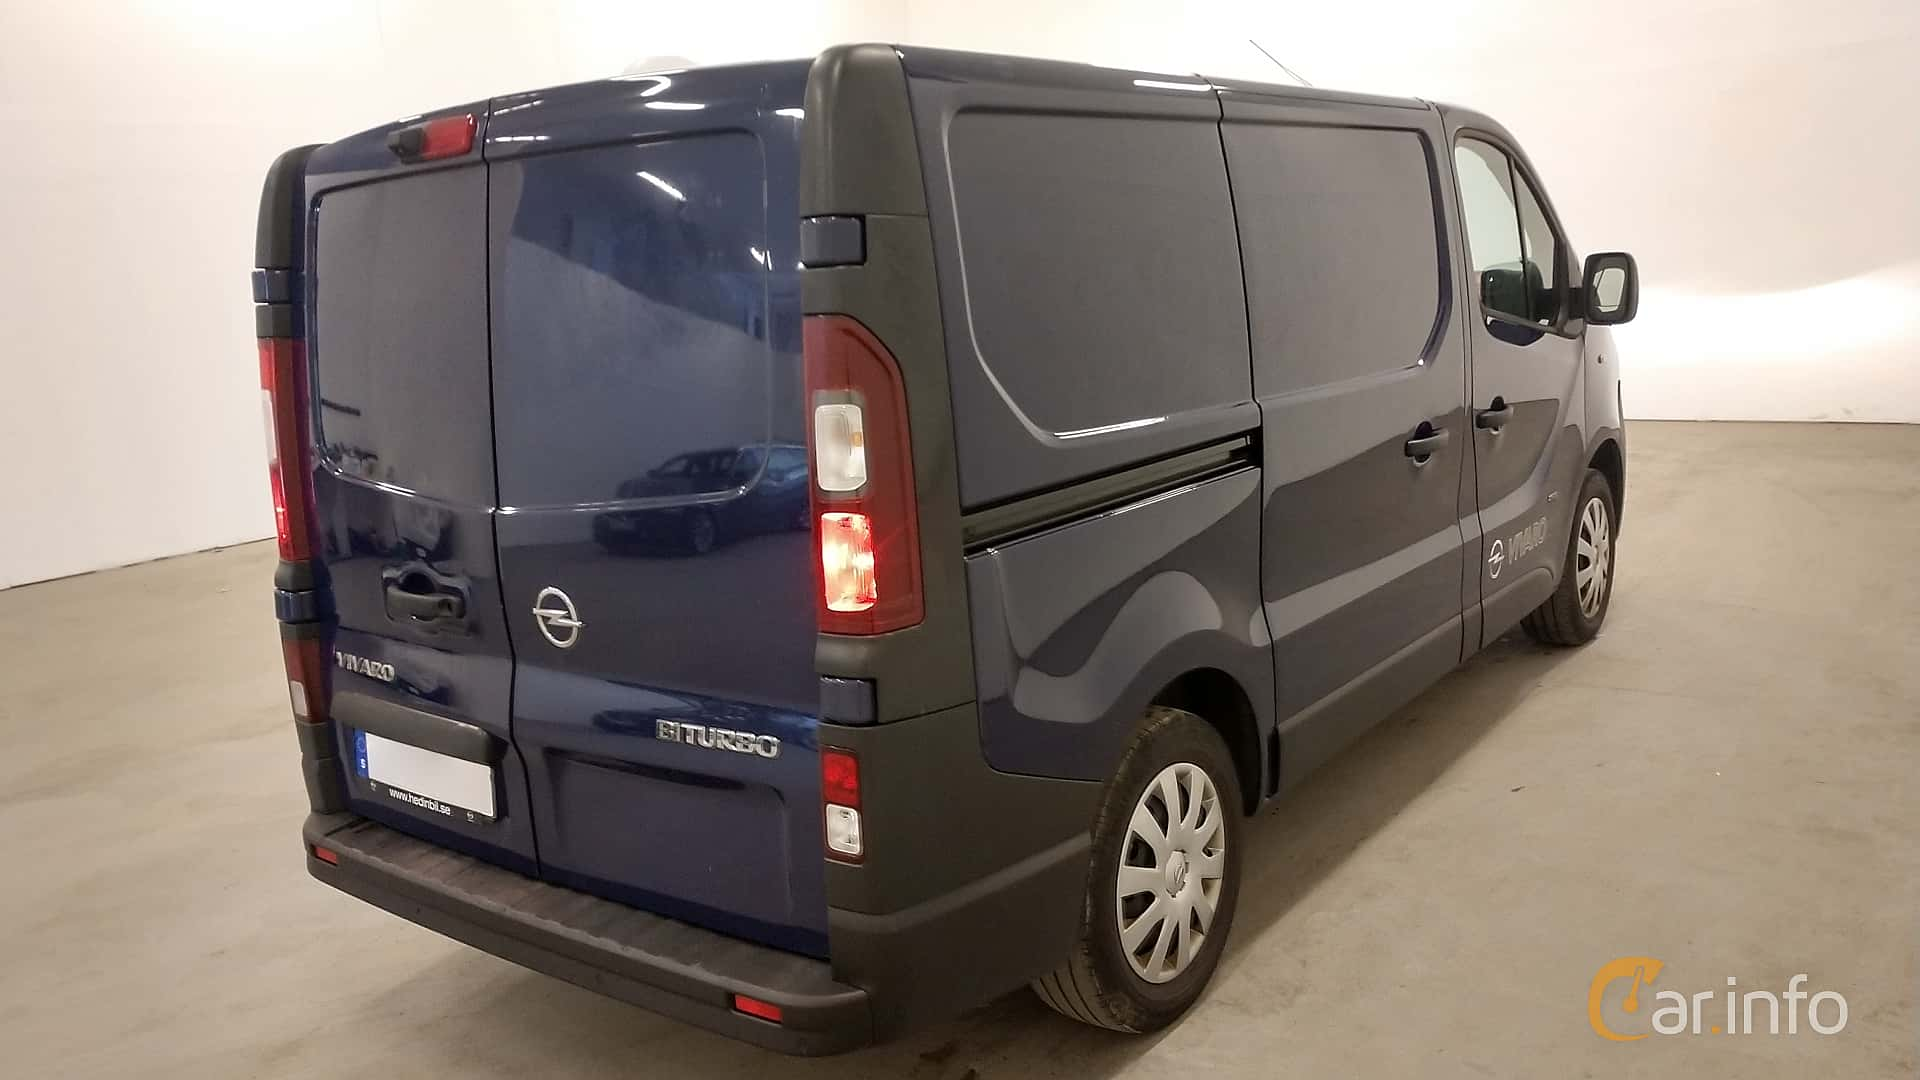 Opel Vivaro Van 1.6 CDTI BIturbo Manual, 120hp, 2015